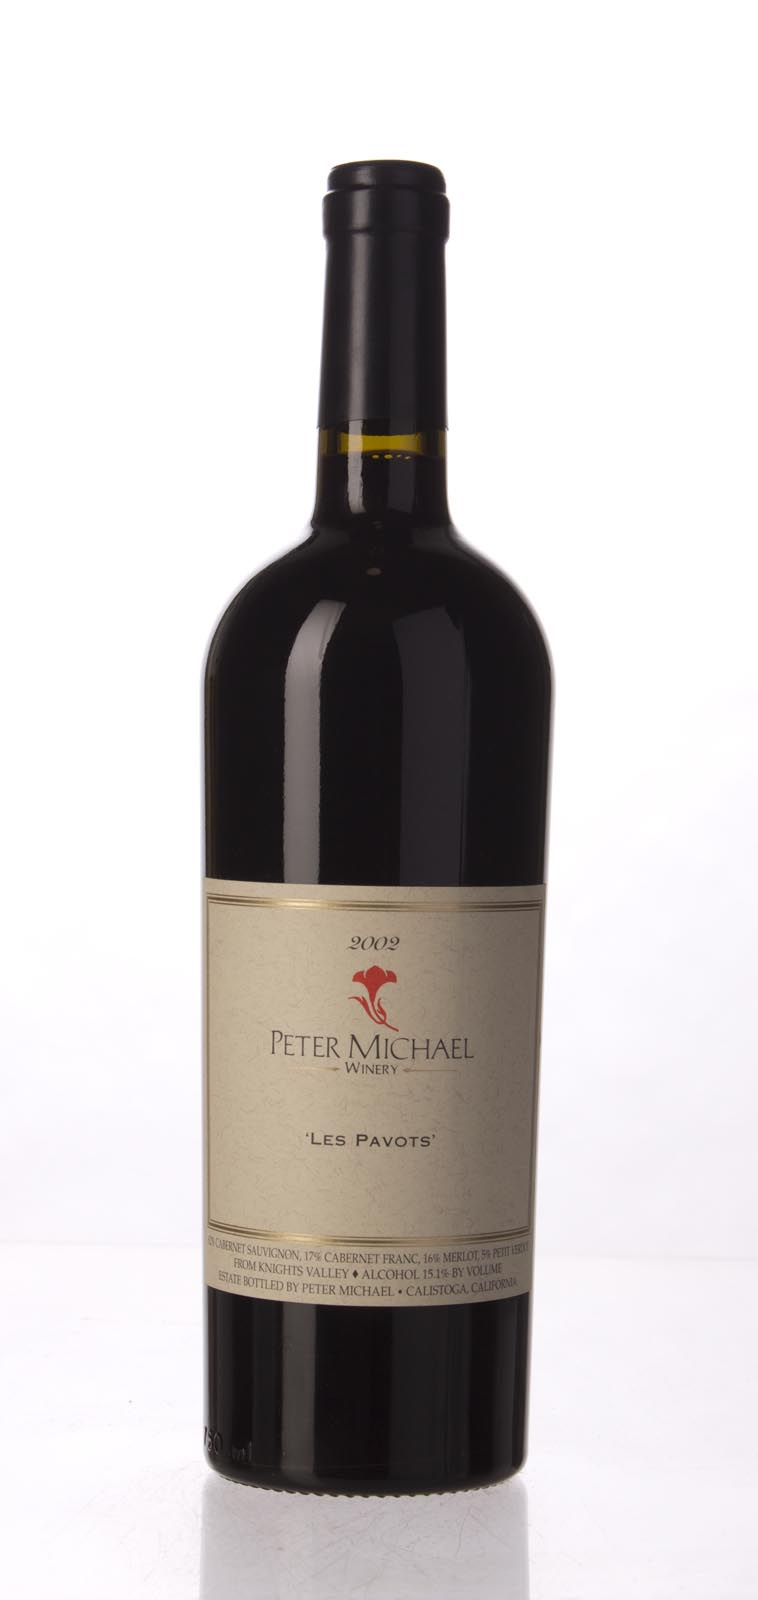 Peter Michael Winery Proprietary Red Les Pavots 2002, 750mL (WA99) from The BPW - Merchants of rare and fine wines.